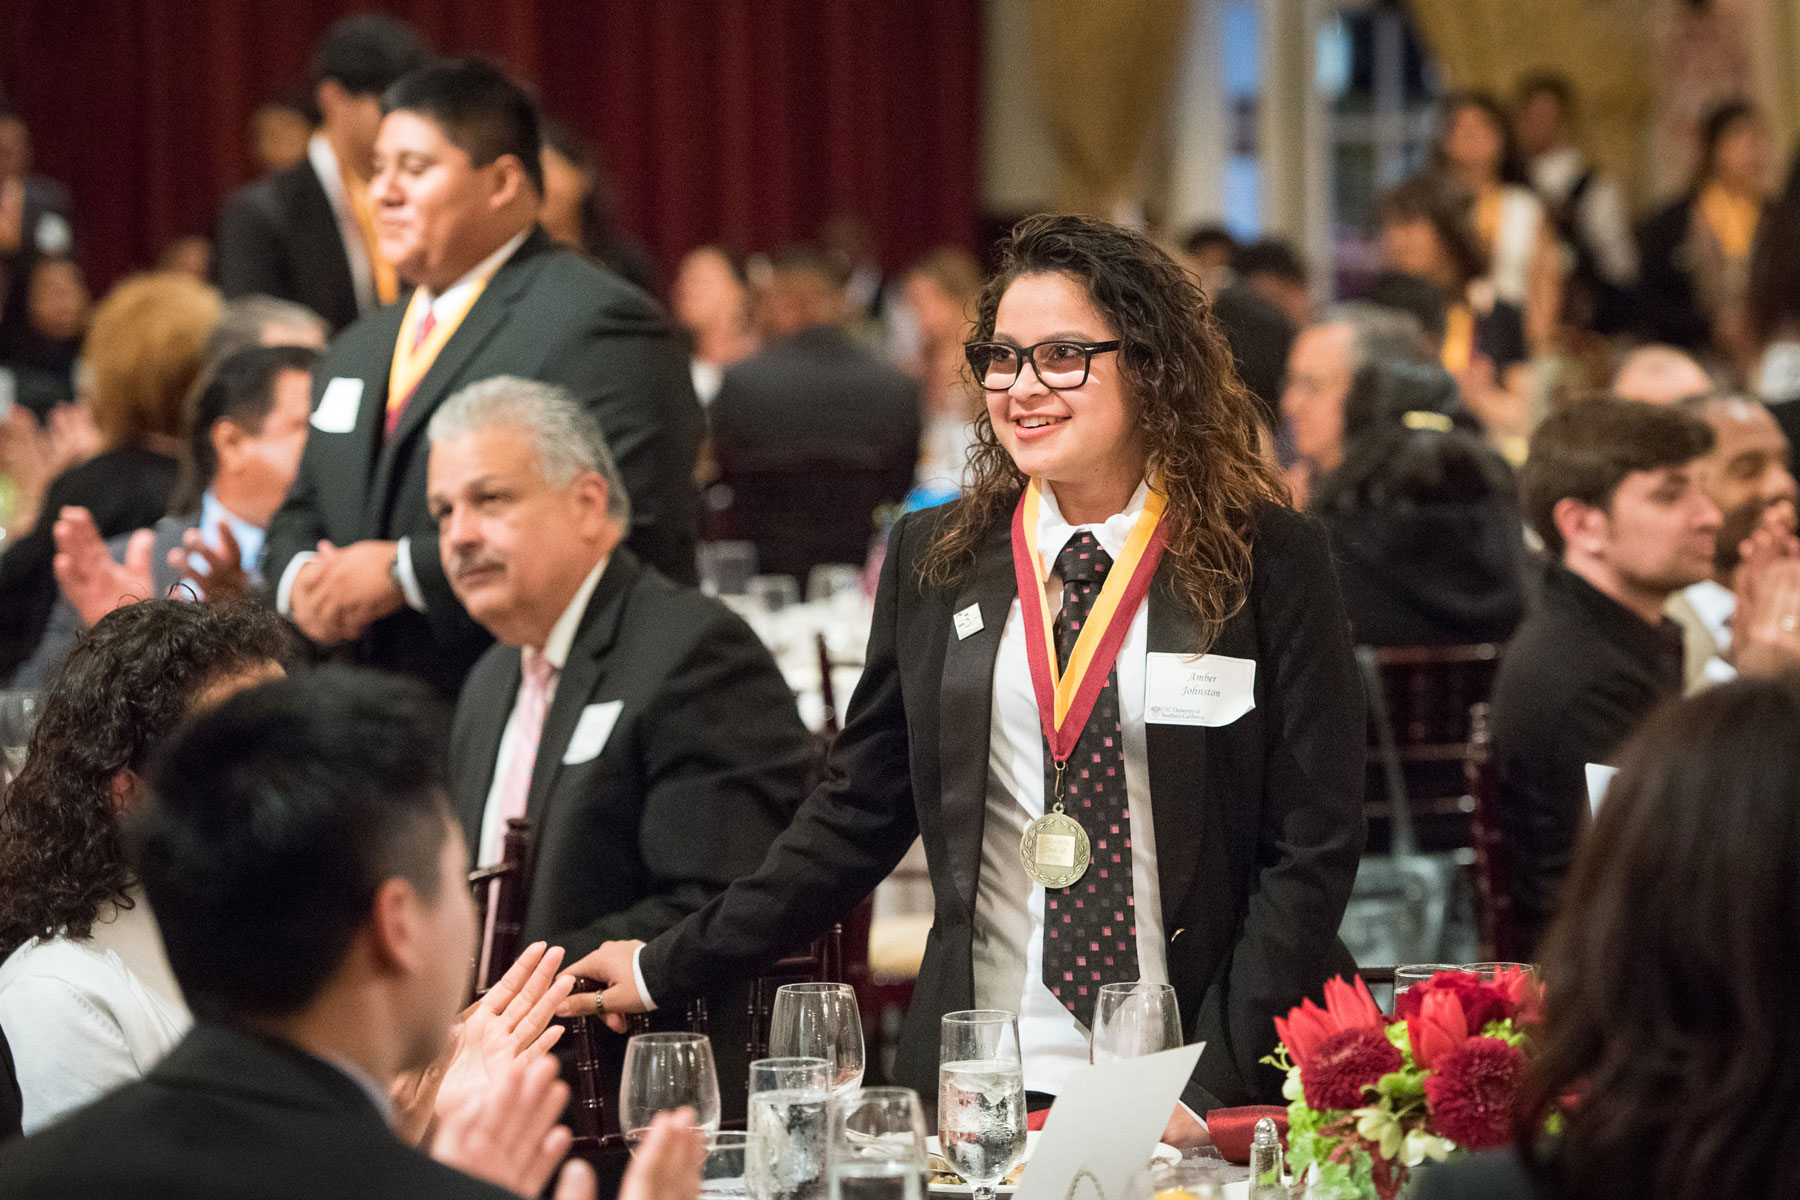 NAI Gala celebrates students